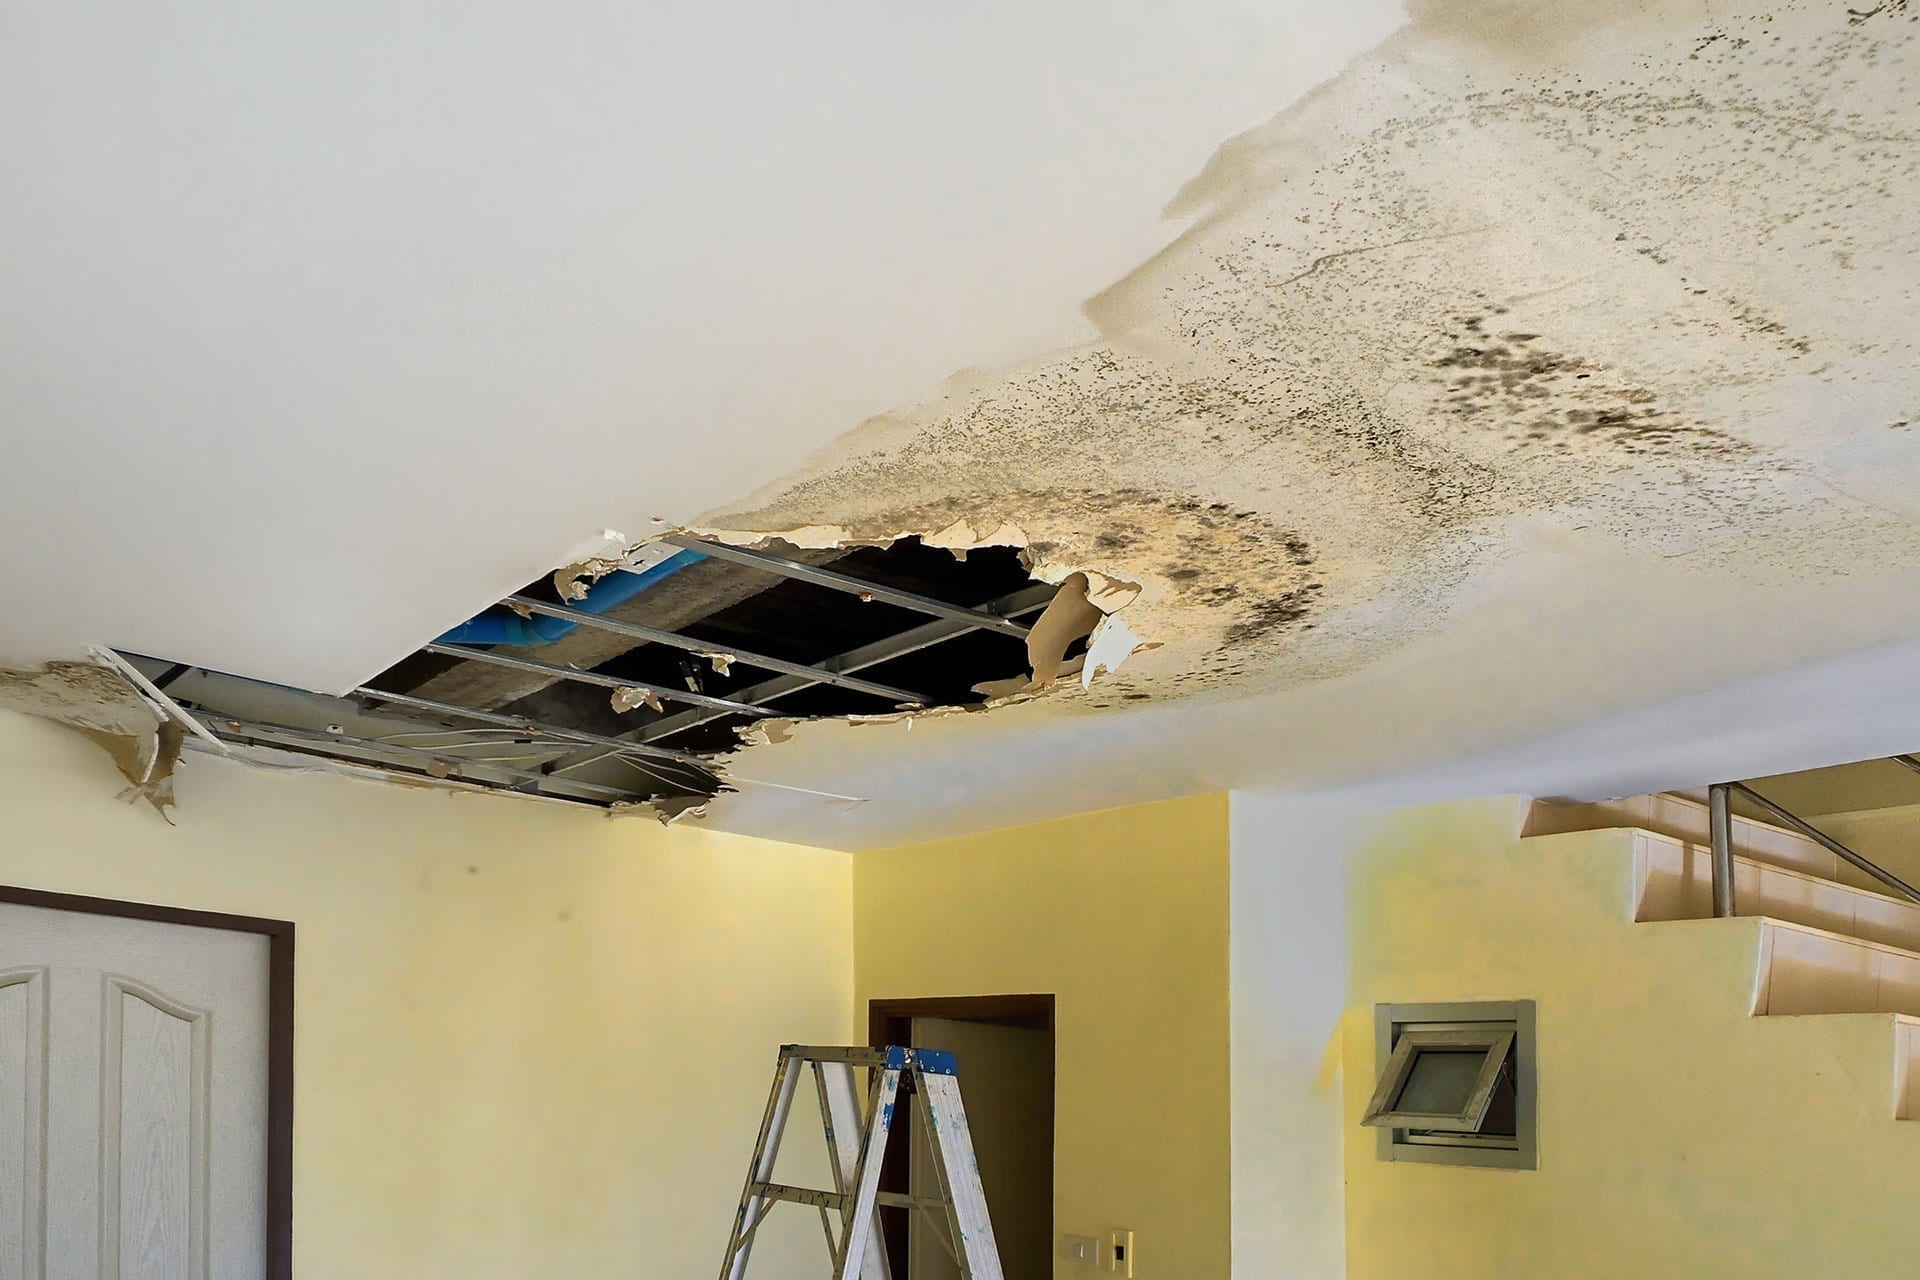 Water Damaged Ceilings Olathe KS Ceiling Leak Repair